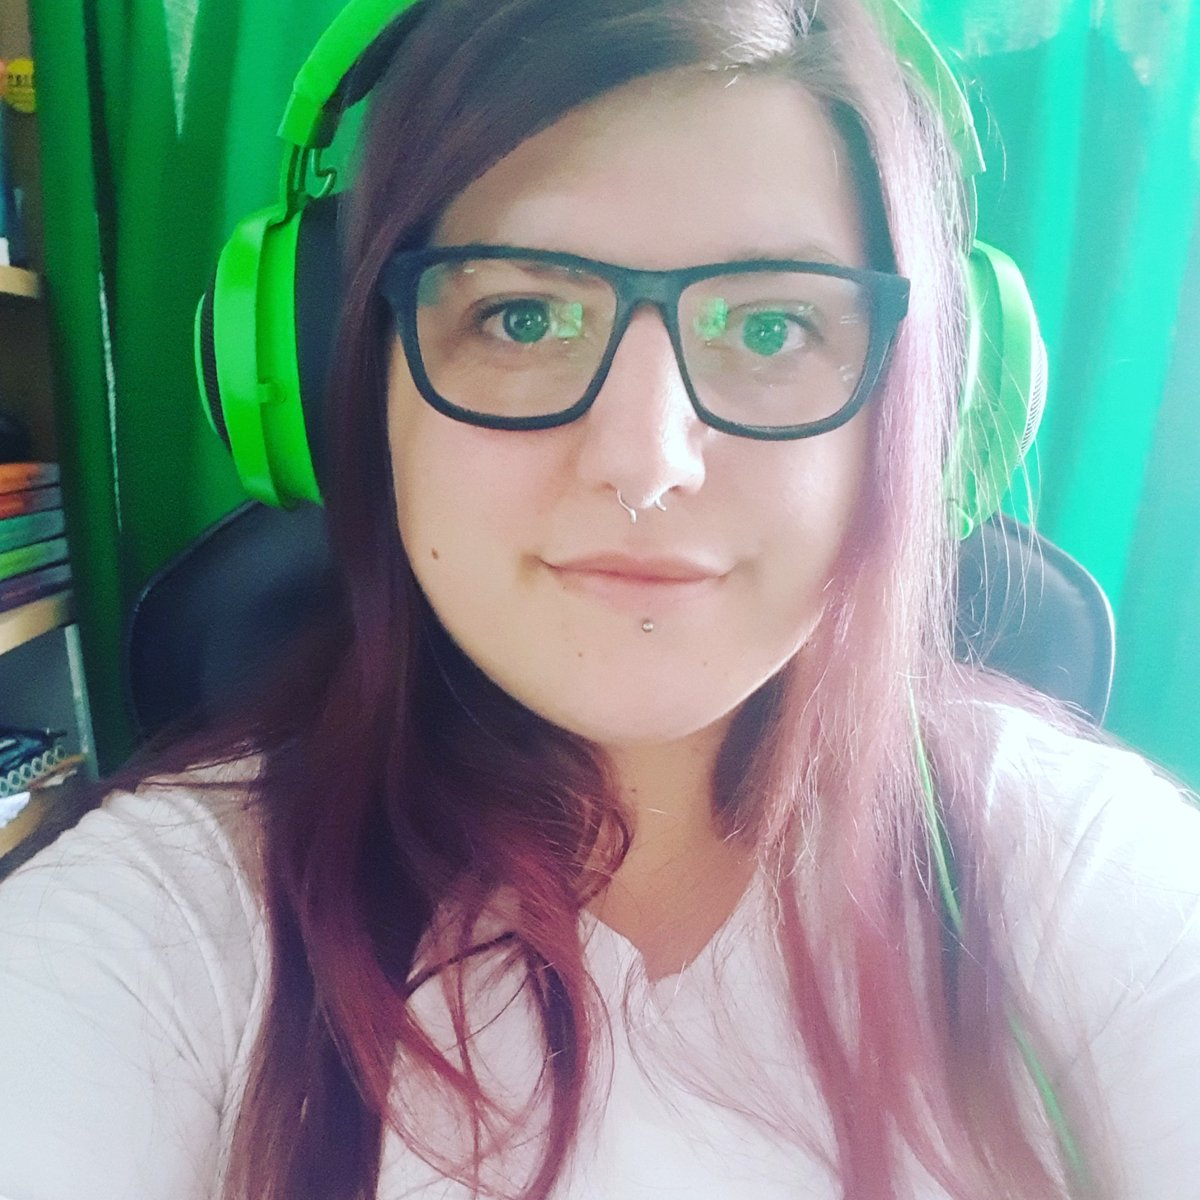 Becca hailstone on twitter live now with rust blueprint wipe becca hailstone on twitter live now with rust blueprint wipe hype httpstrvjbk83k7g streaming streamer supportsmallstreamers twitch gaming malvernweather Choice Image